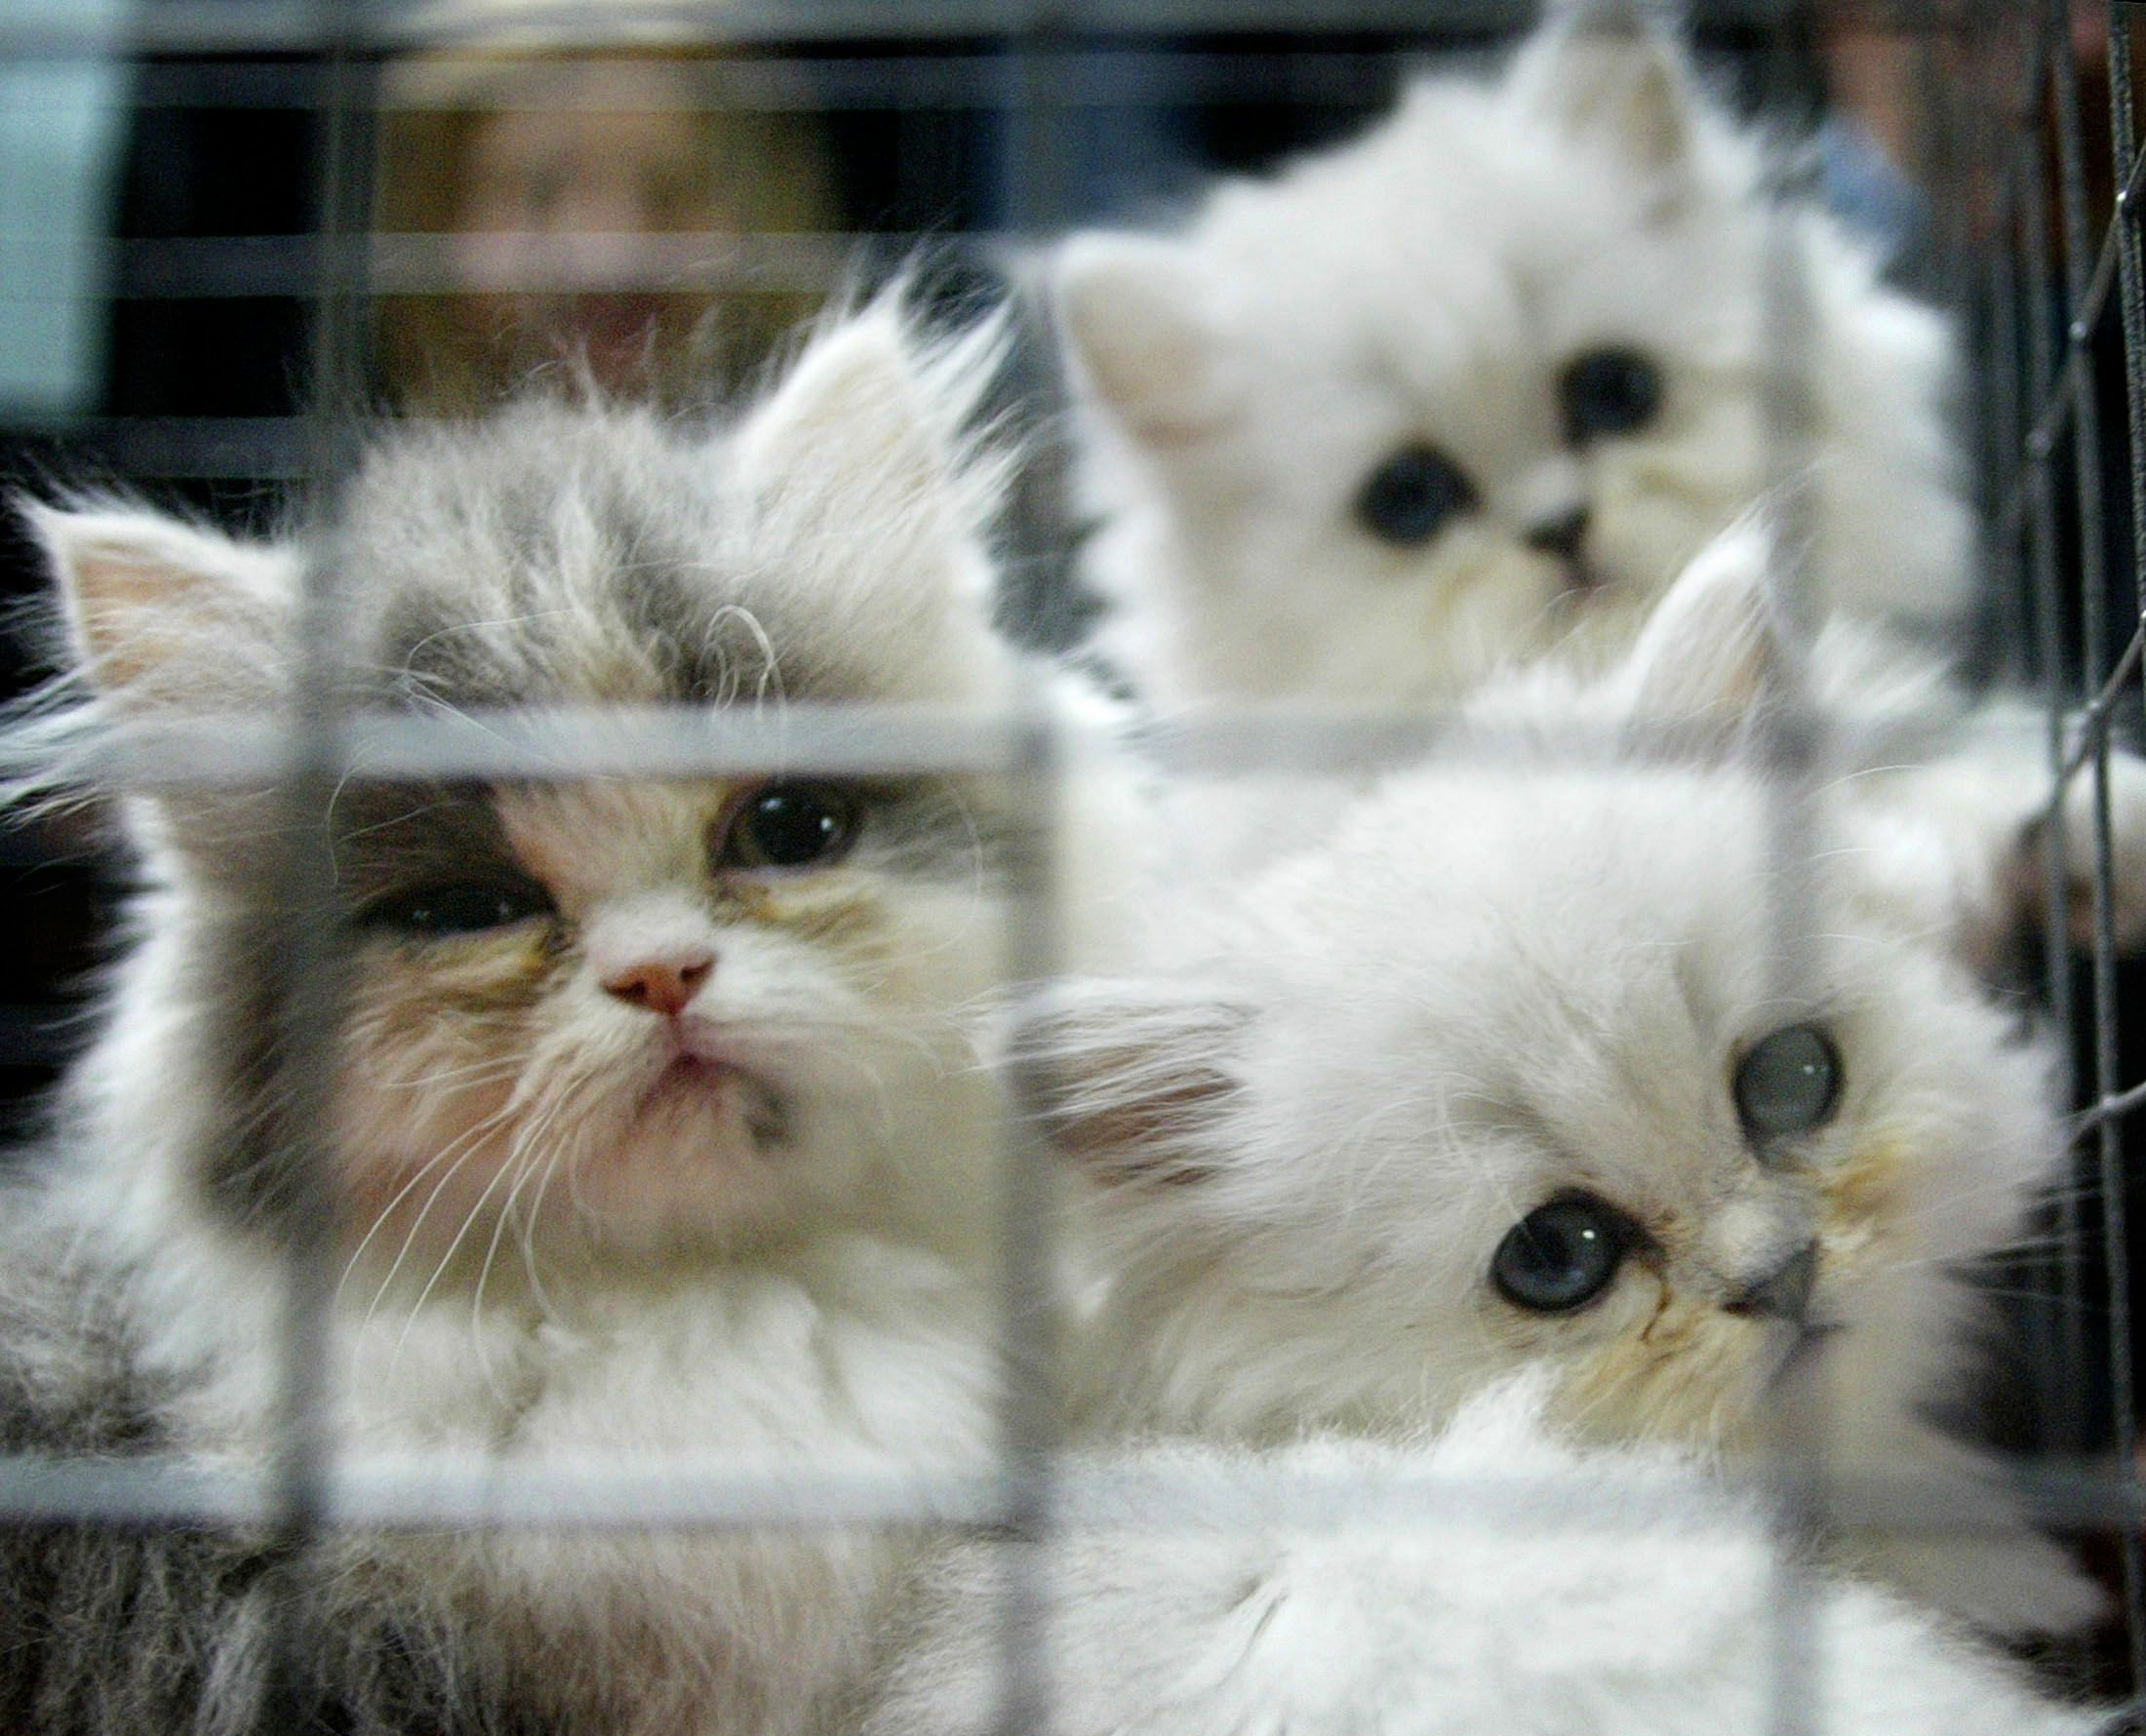 kittens sold as bait for underground dog fights